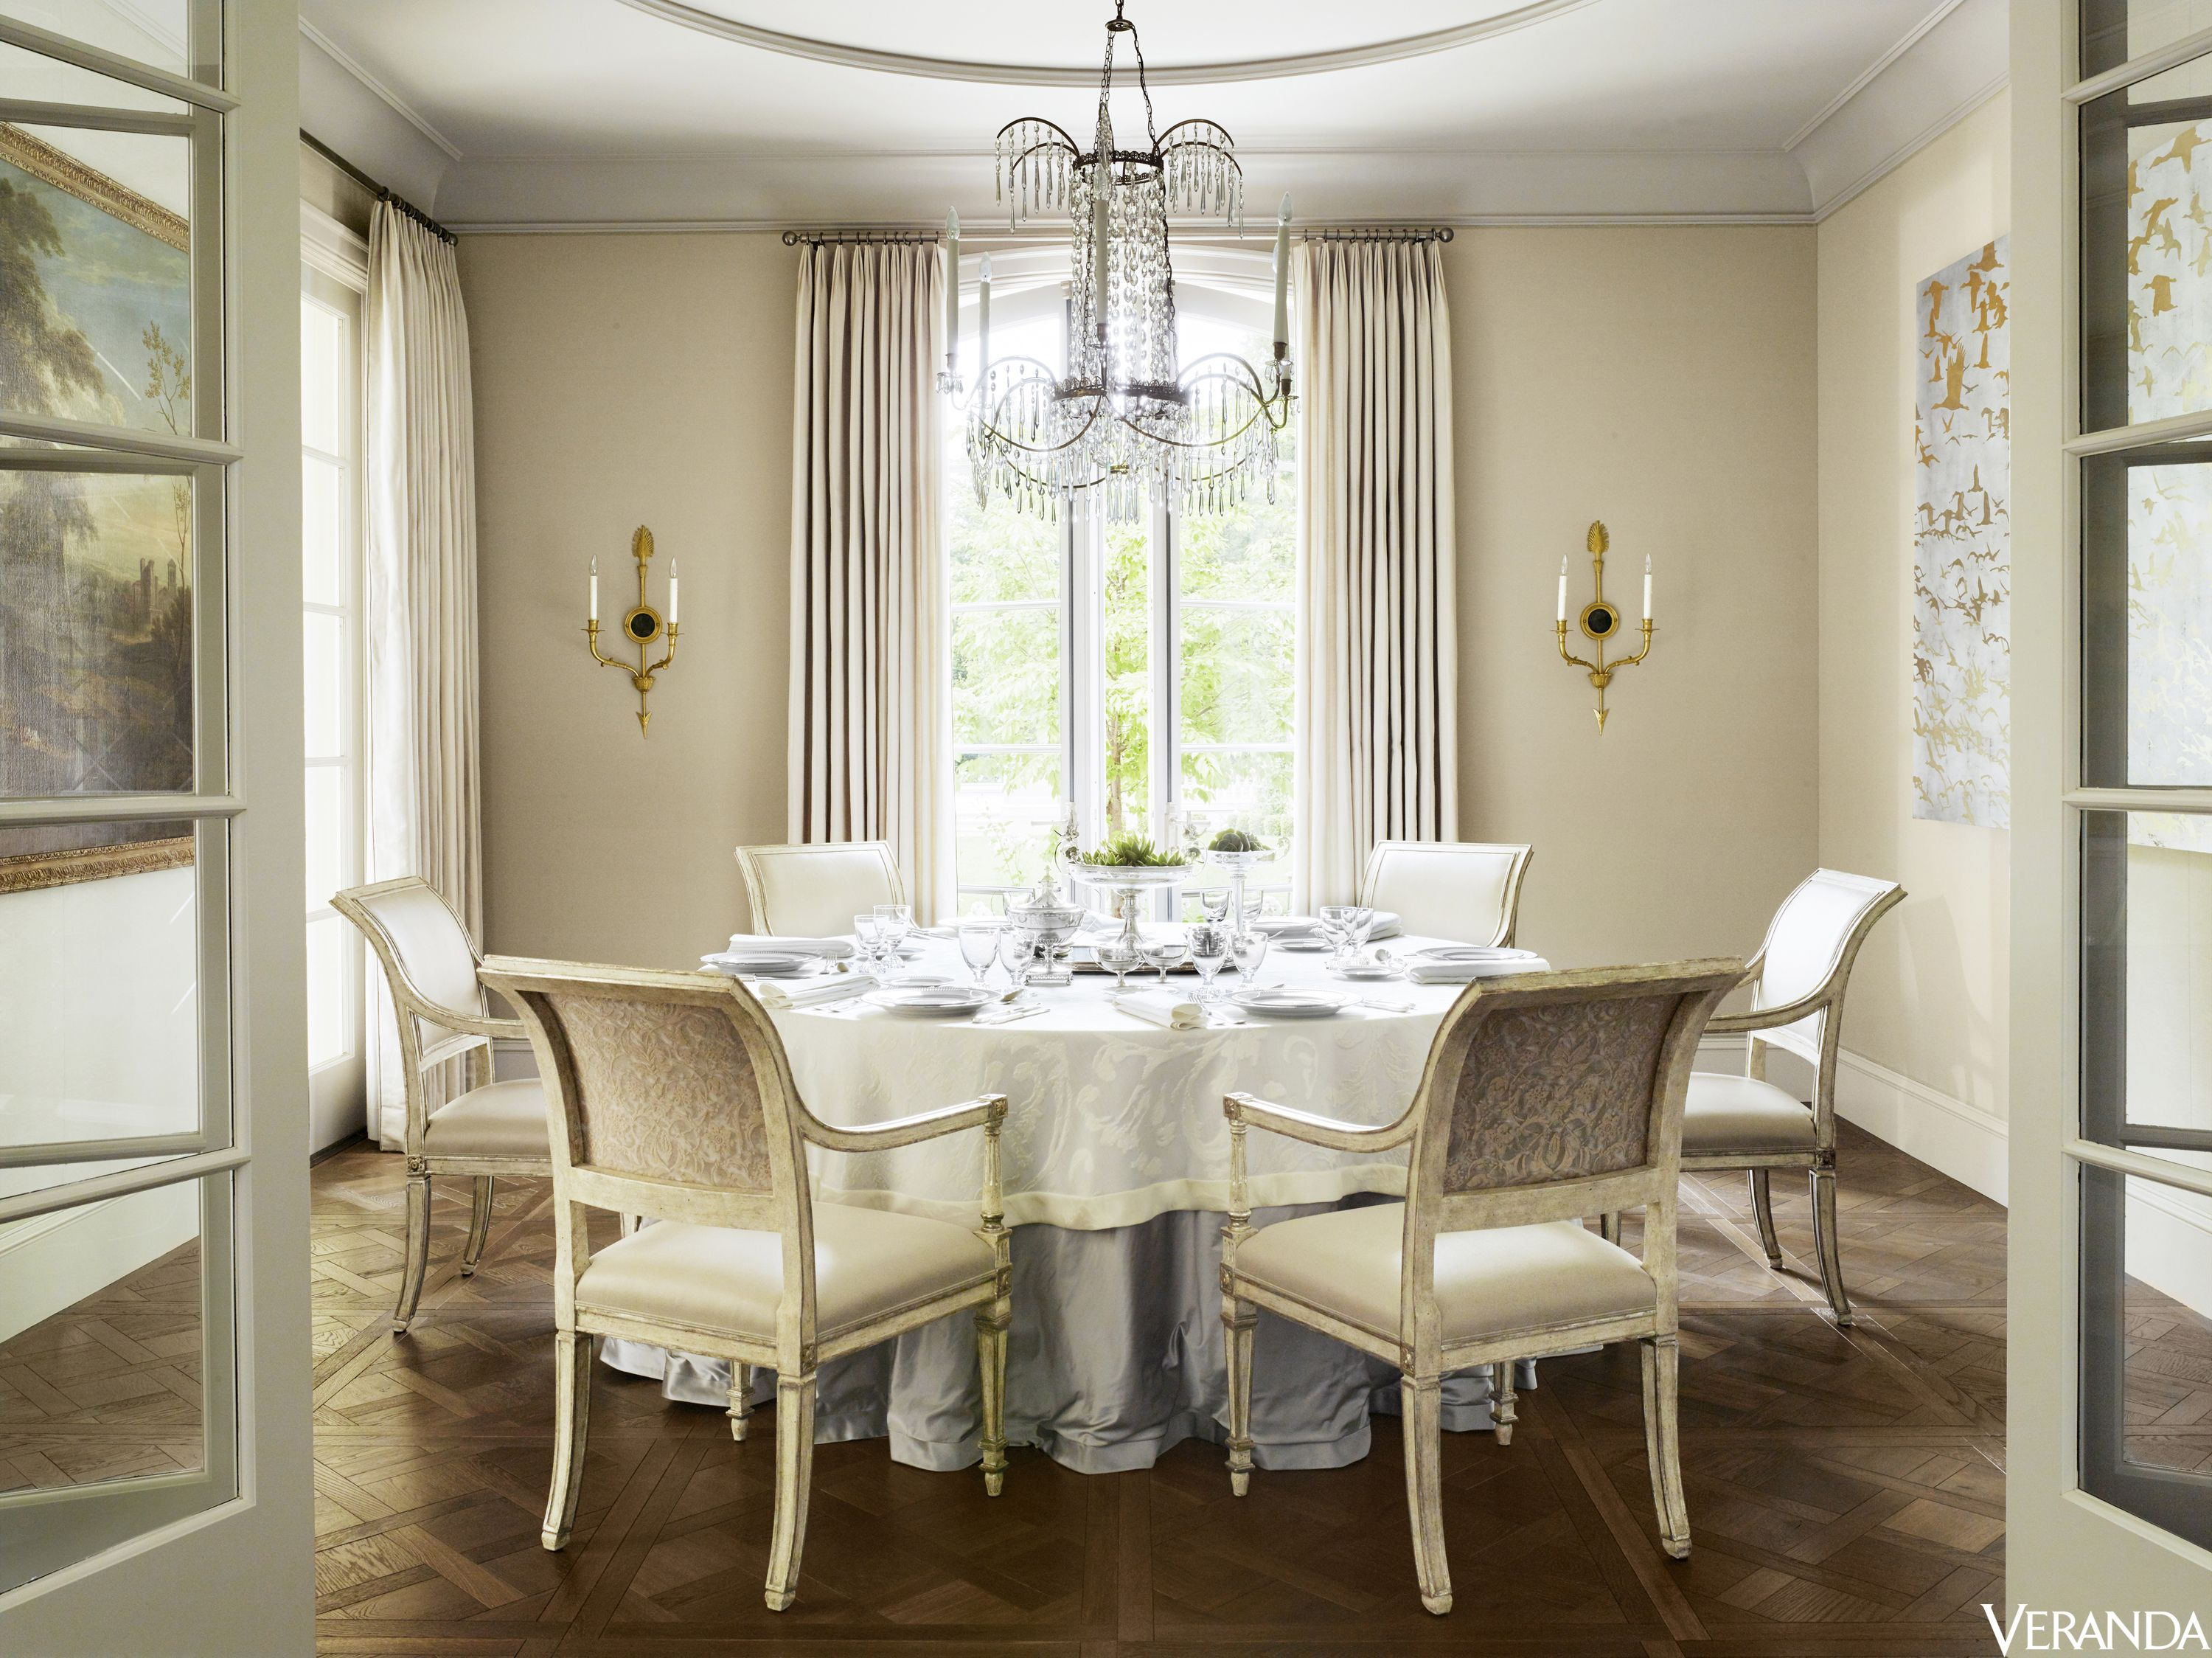 HOUSE TOUR: A California Mansion With Sumptuous French Sensibilities